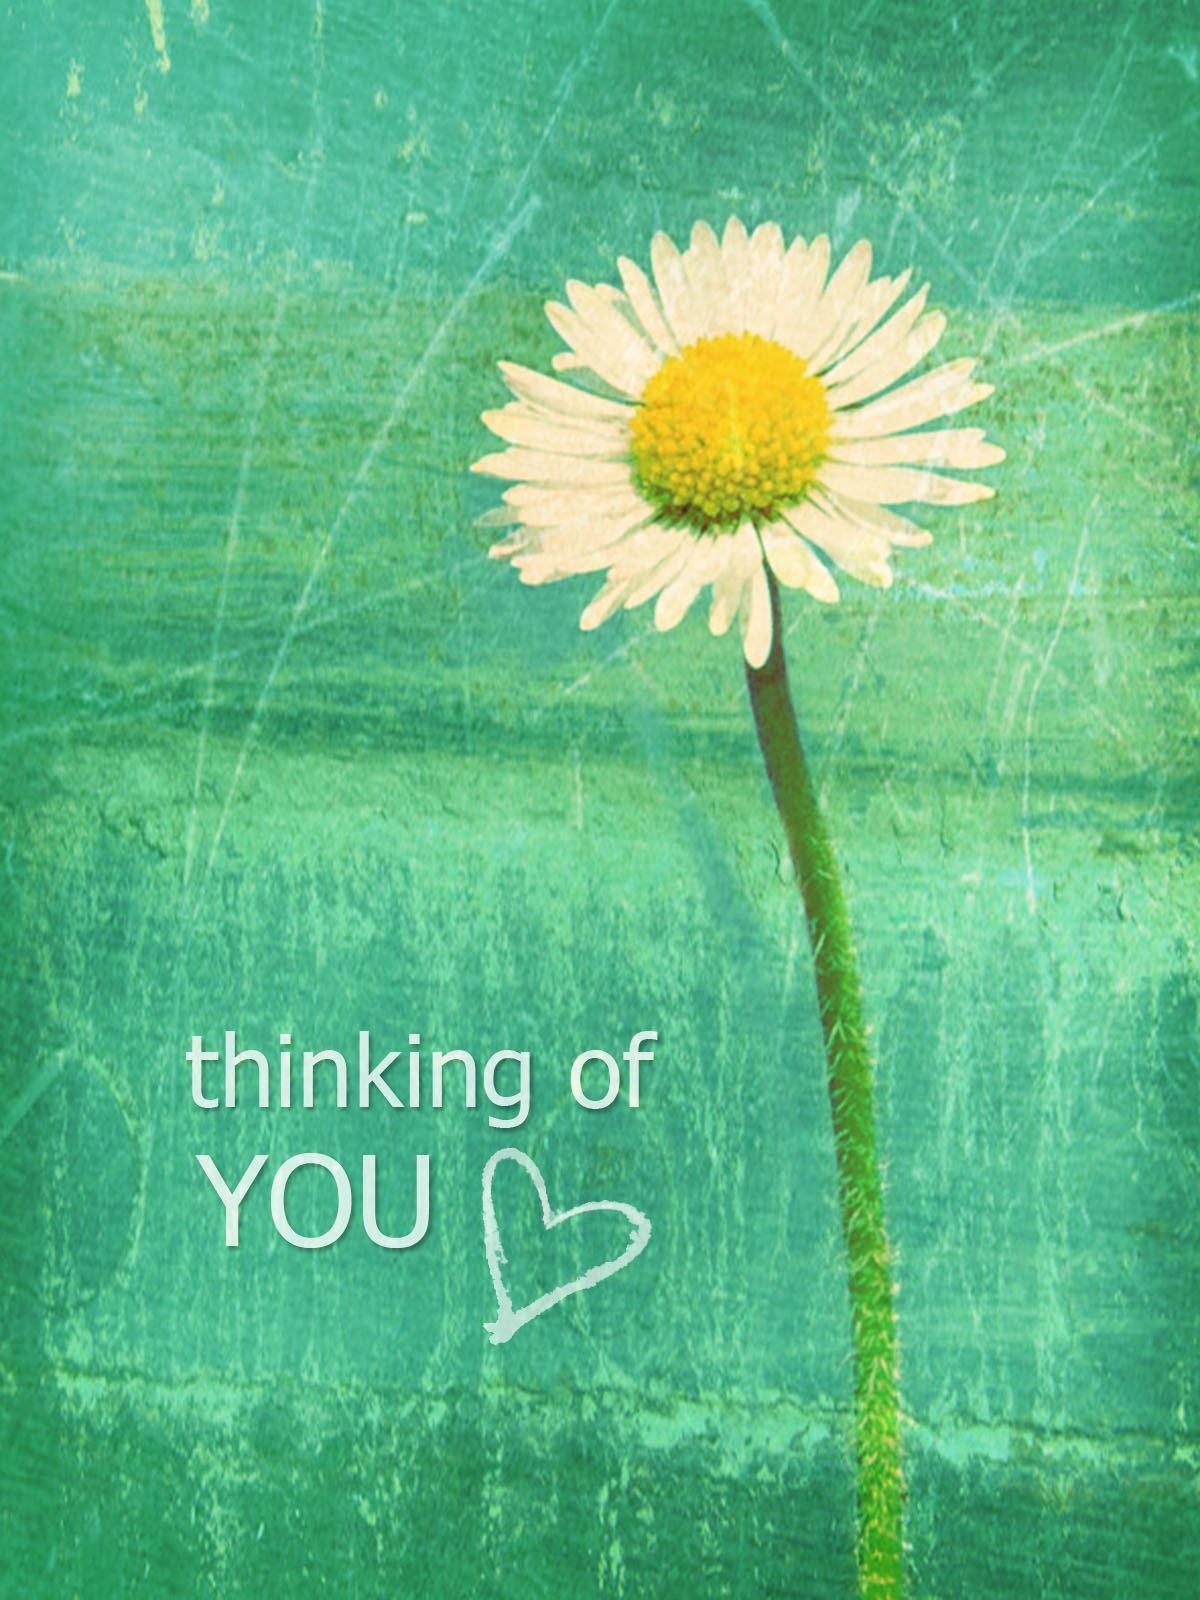 Thinking Of You Thinking Of You Quotes Sympathy Thinking Of You Quotes Thinking Of You Images